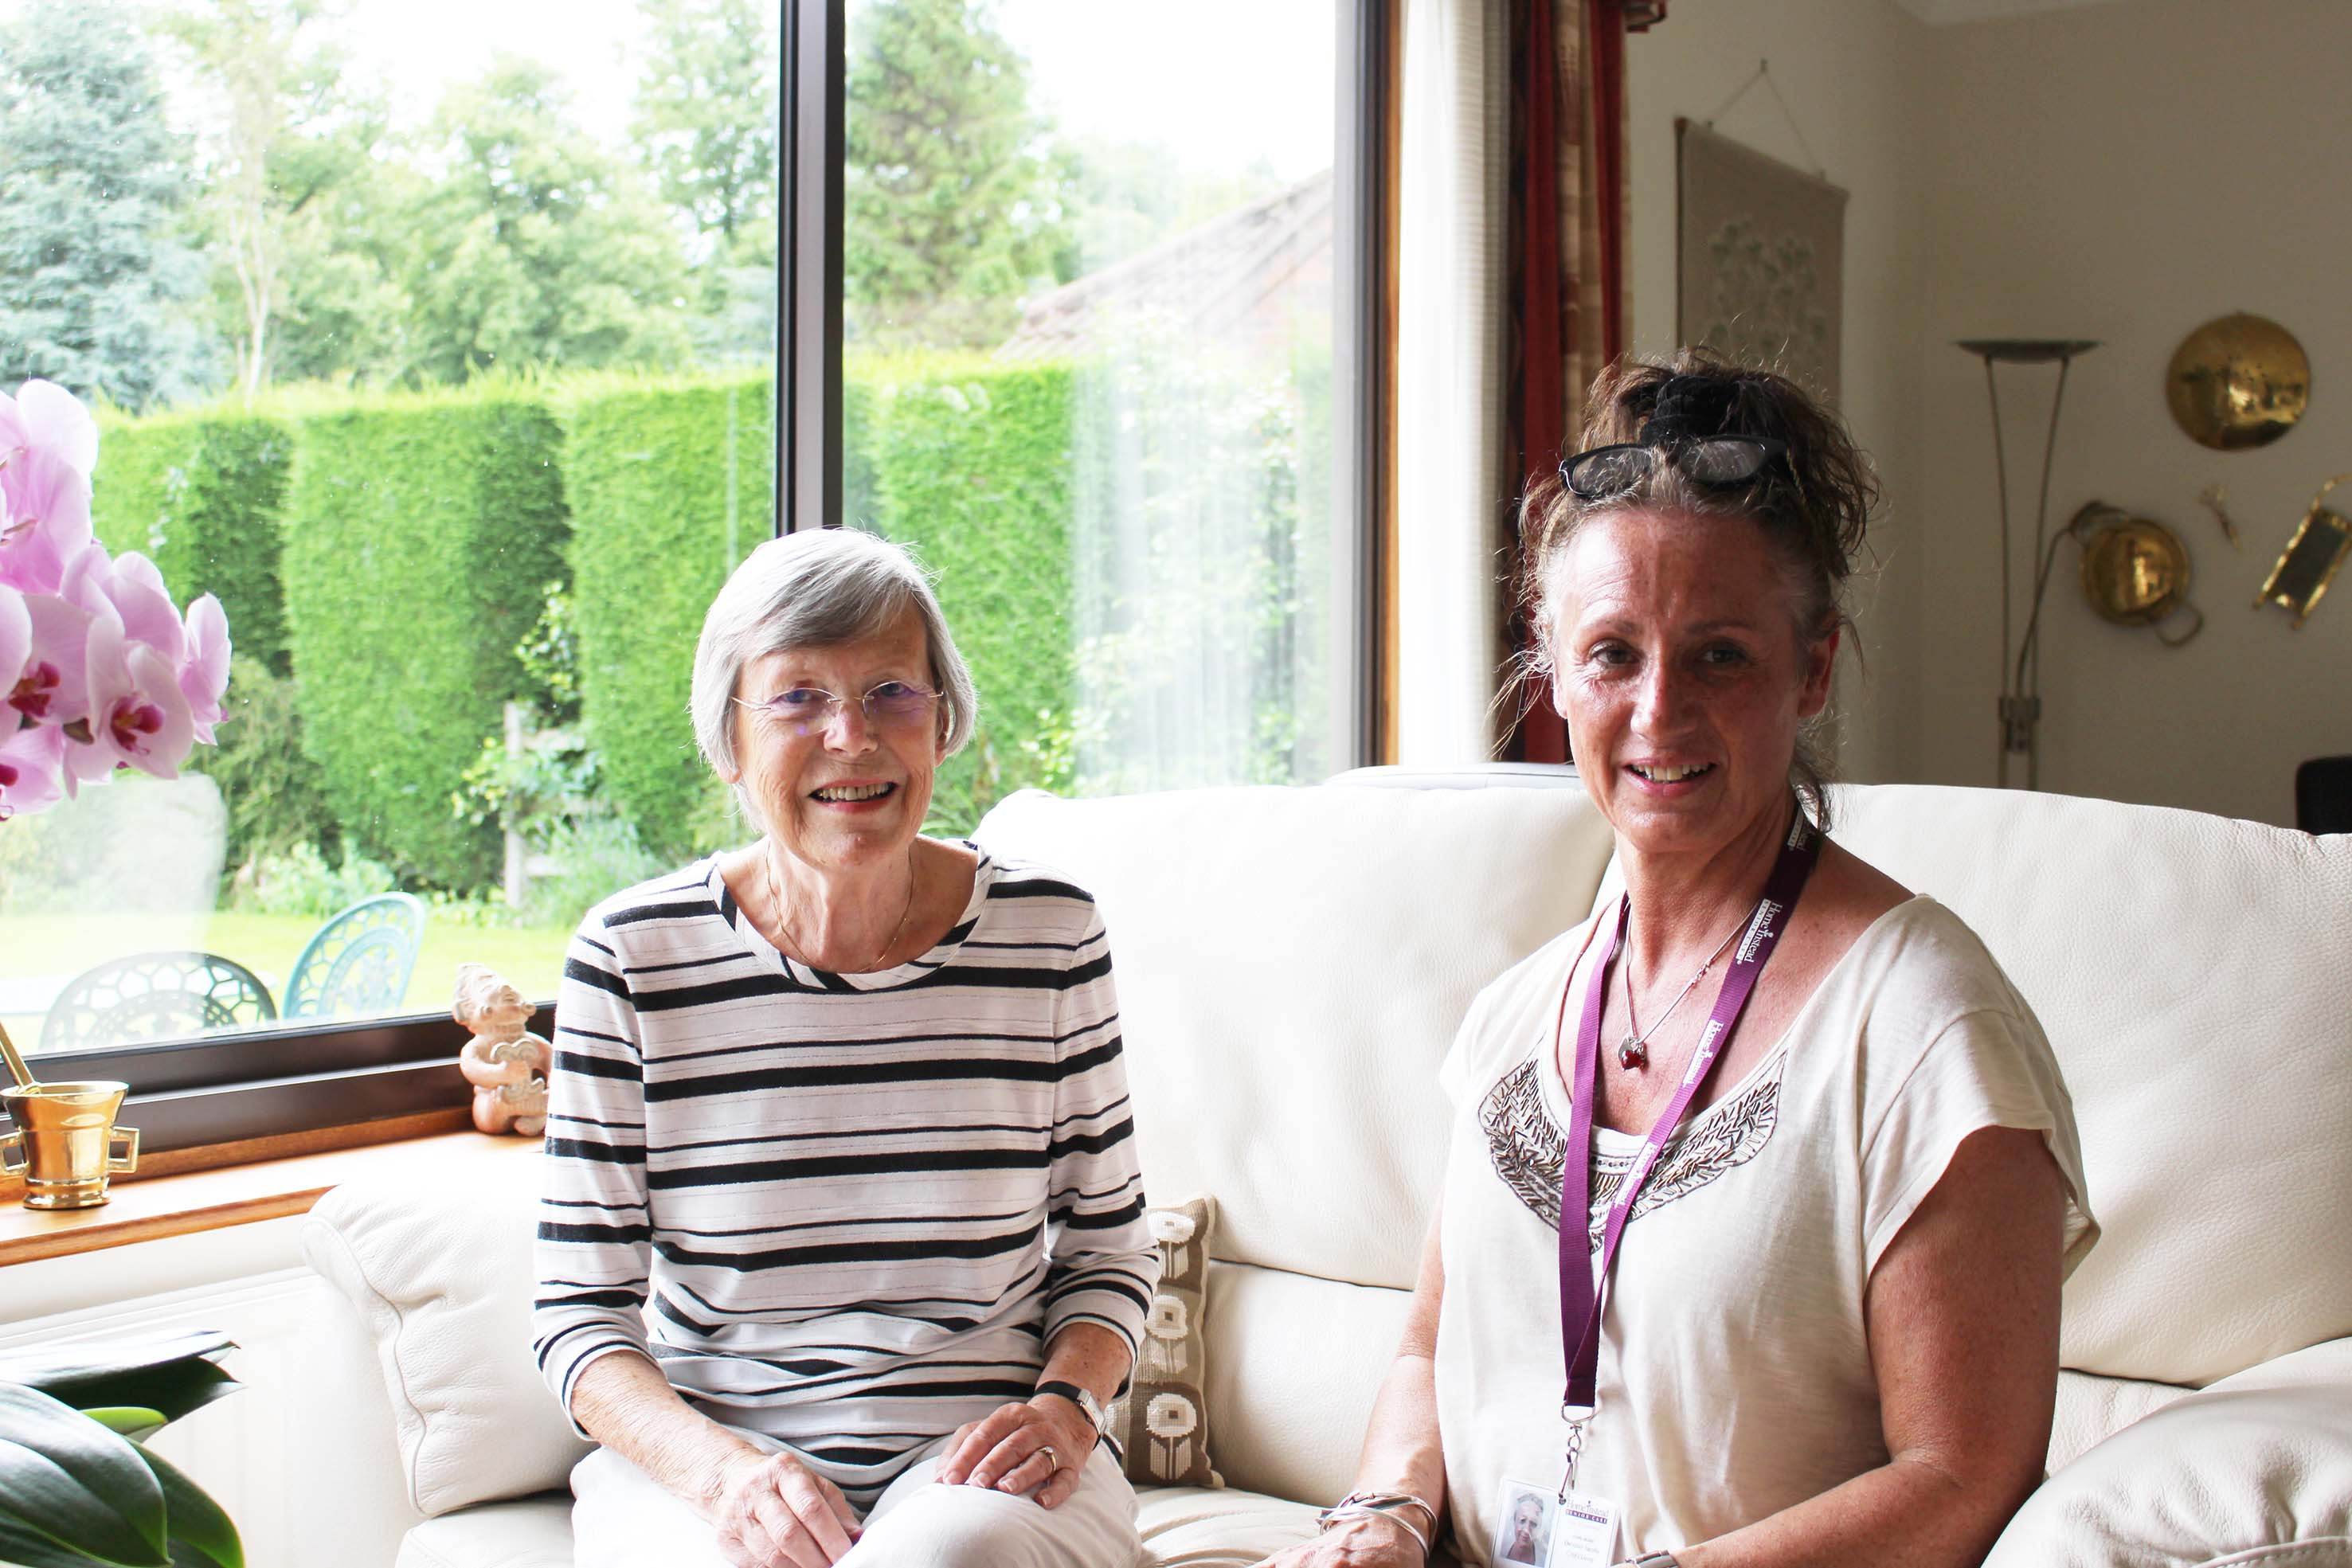 Home Instead East Nottingham and Melton Mowbray CAREgiver providing home care to an elderly client